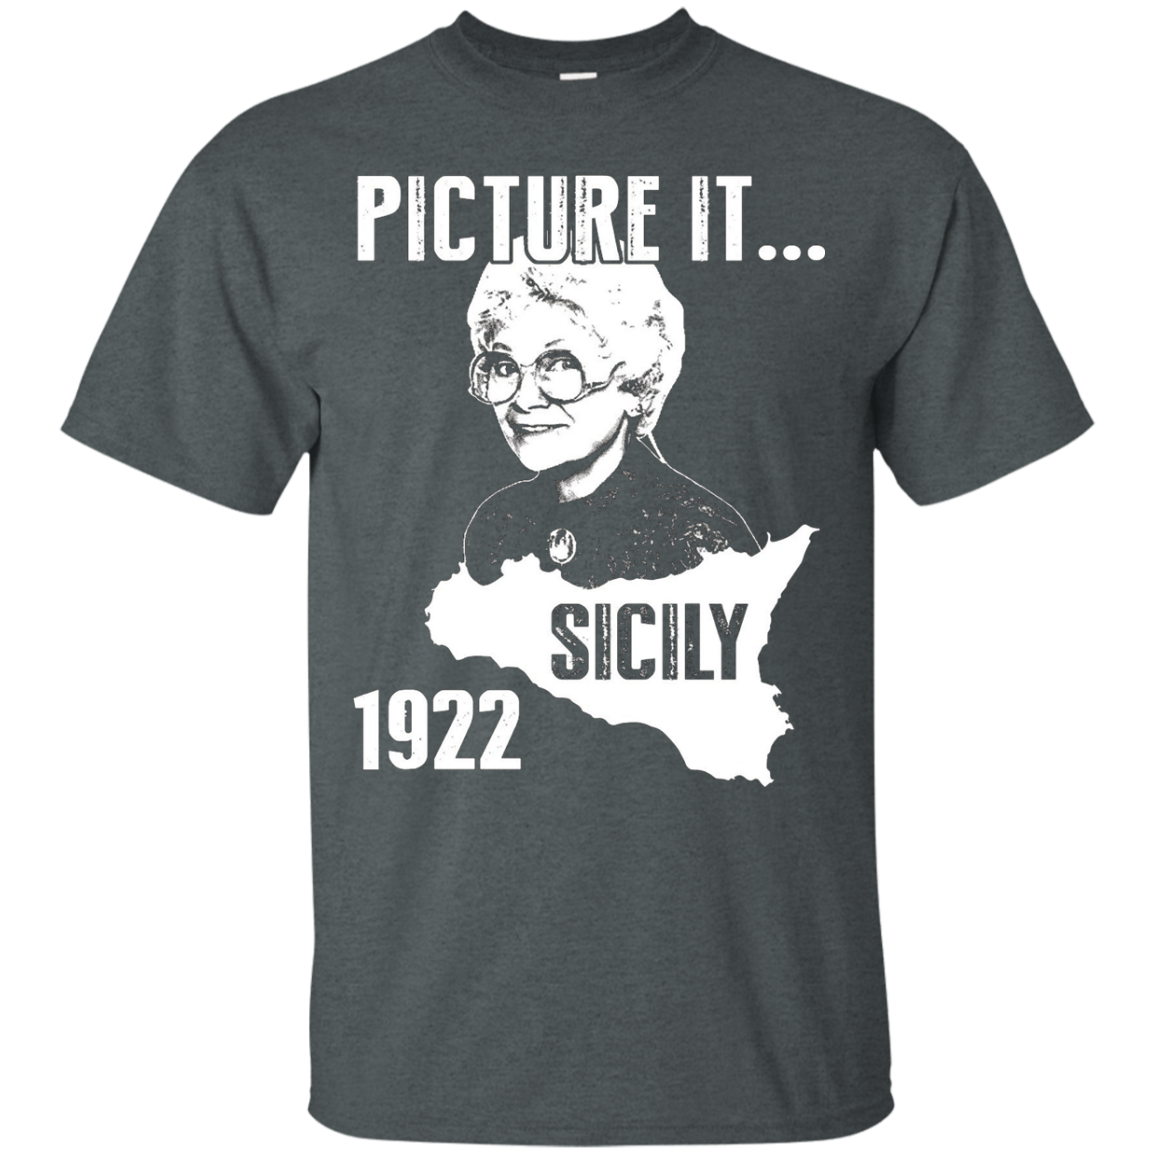 Sicily Shirt Picture it... Sicily 1922 - Golden Girls Shirt